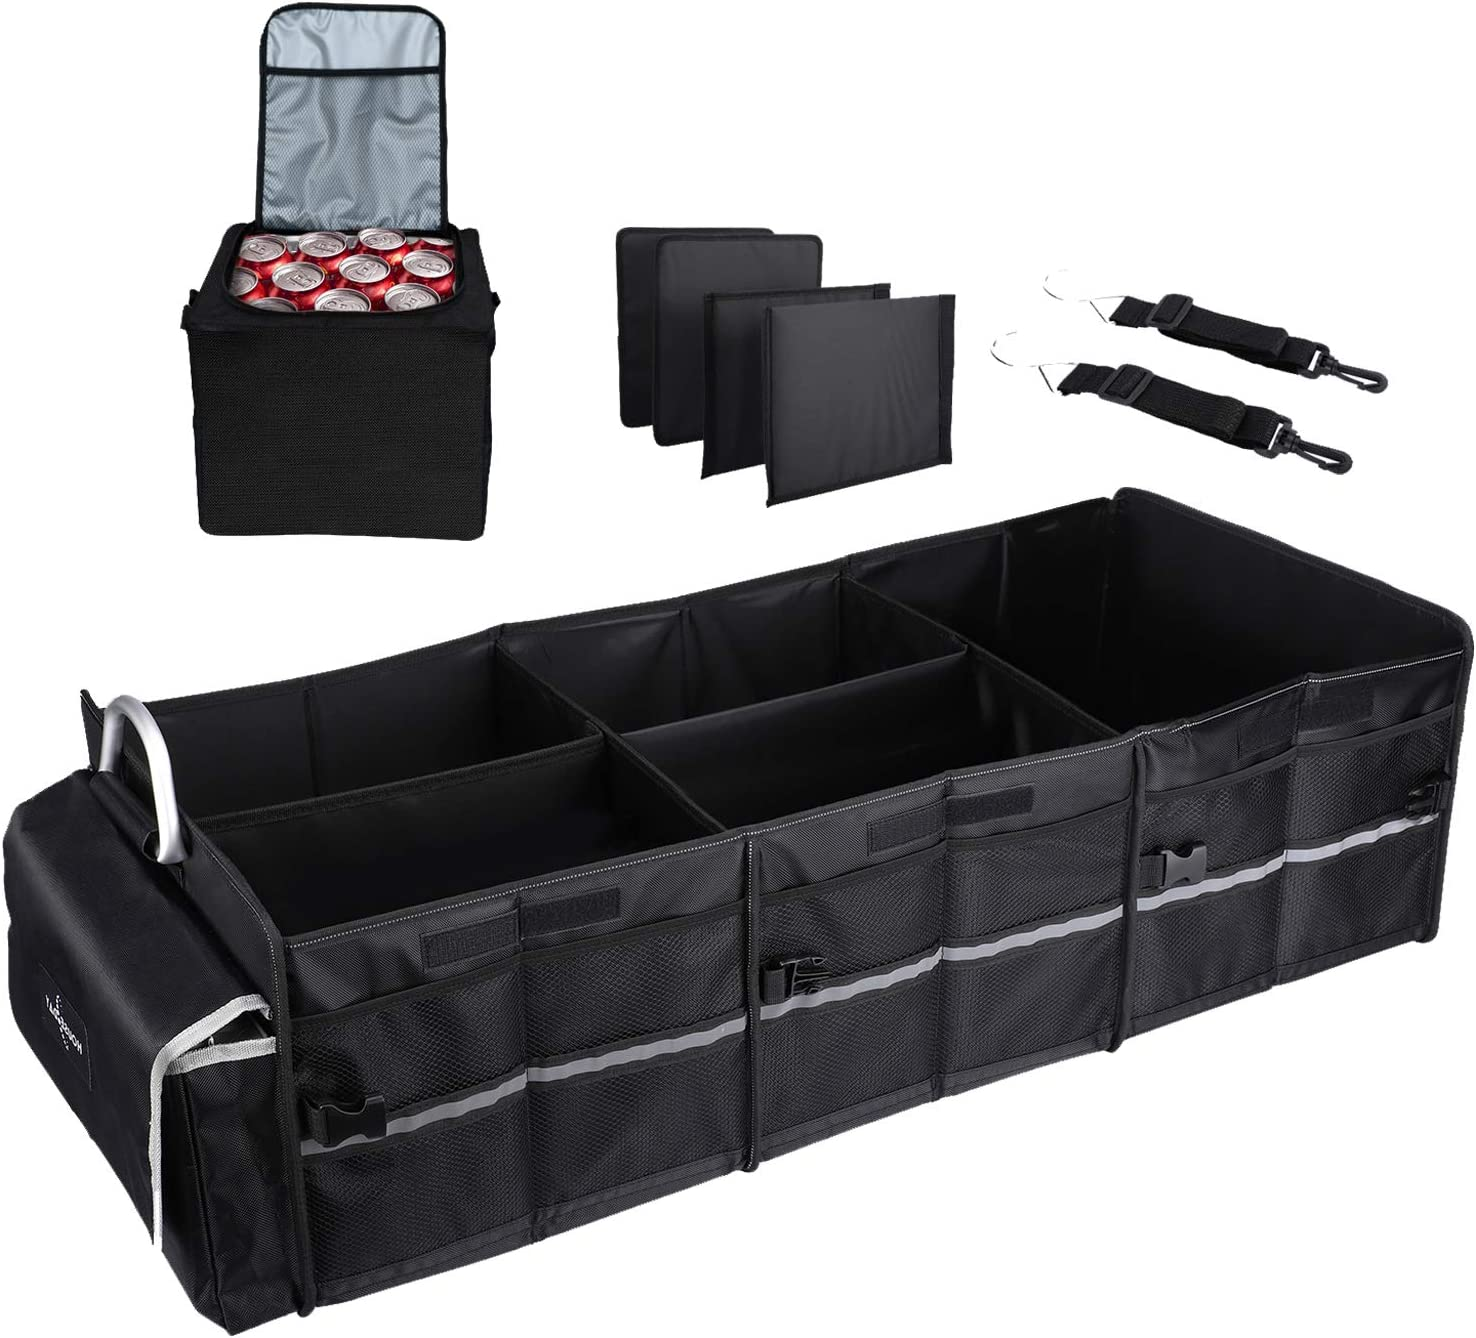 3 Compartments//Cooler, Black Car Trunk Organizer Waterproof Collapsible Trunk Storage Organizer with Insulation Leakproof Cooler Bag for Car Truck SUV